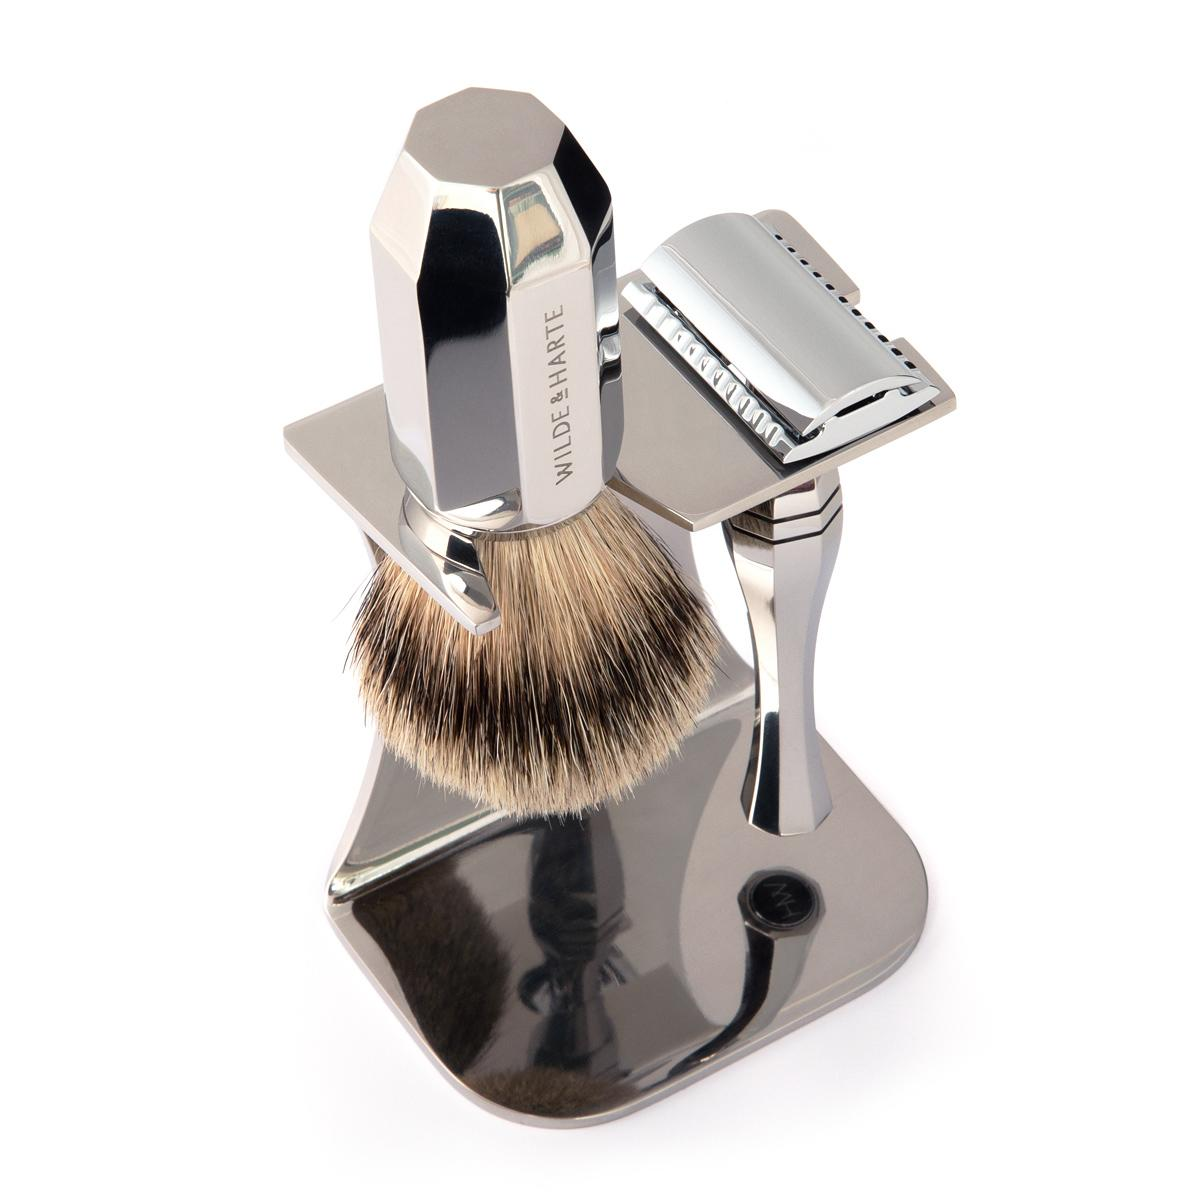 razor and shaving brush gift set